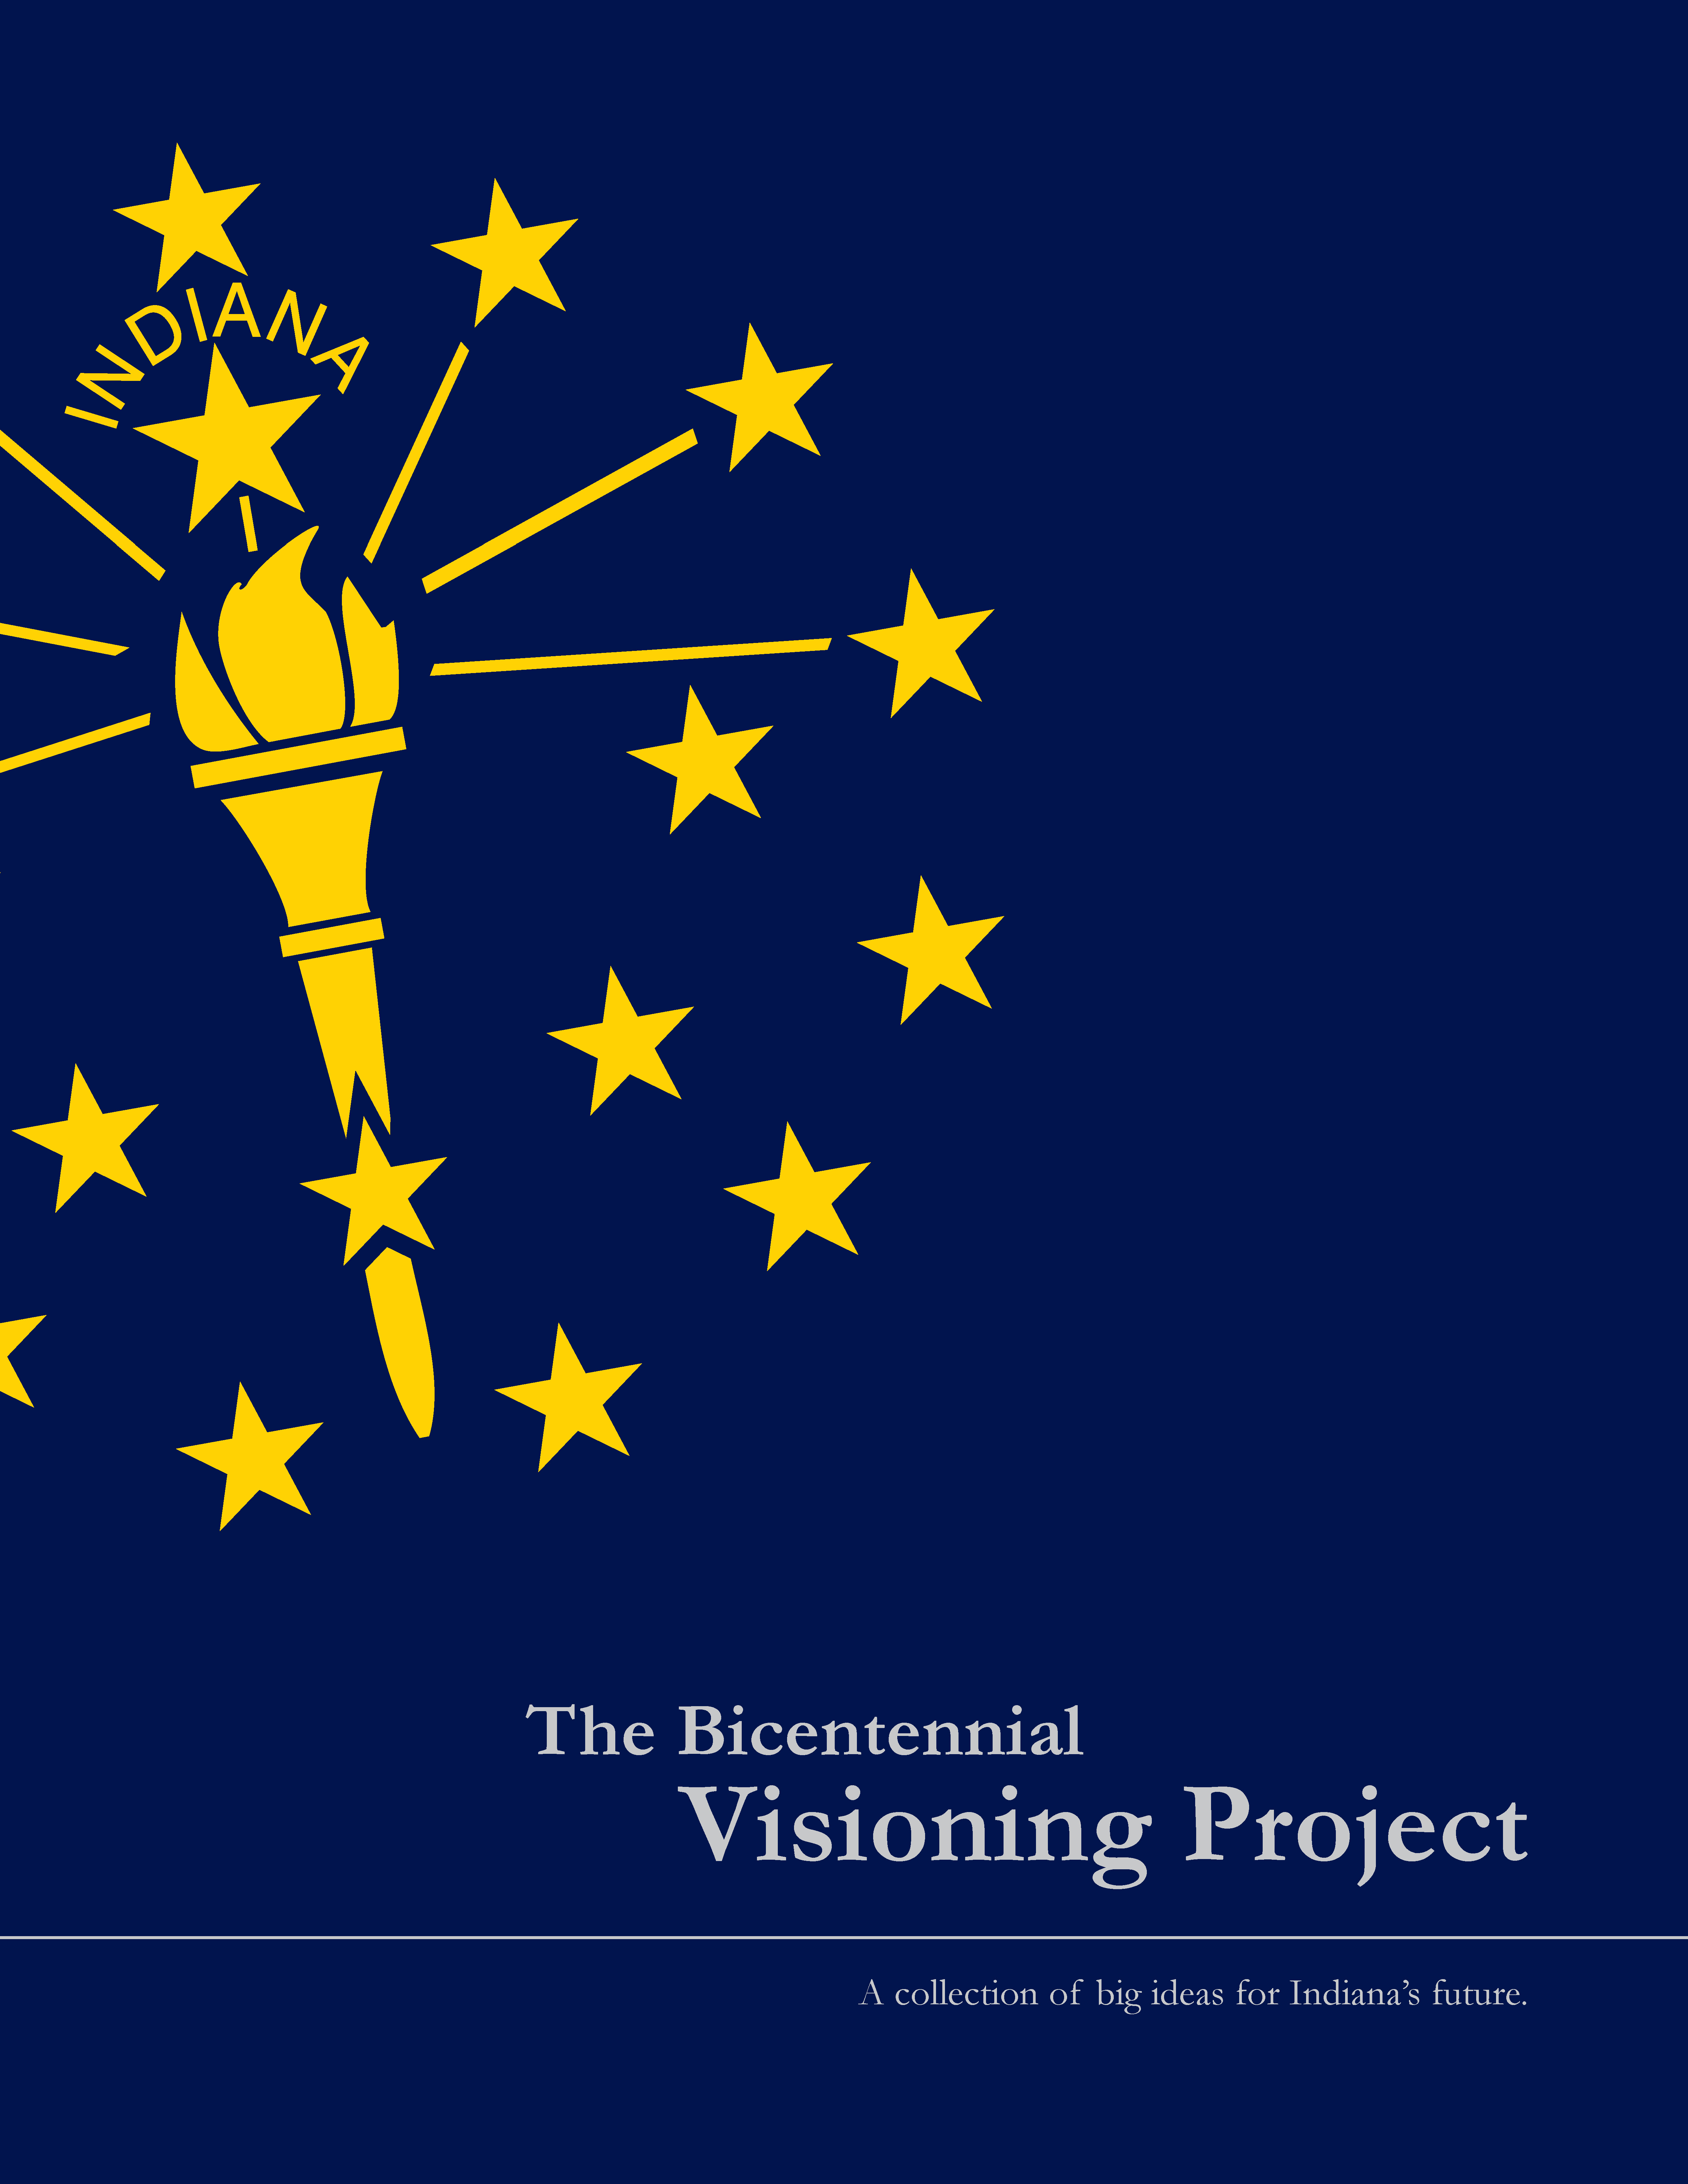 Cover page designs for school projects note book cover page design - A Collection Of Big Ideas For The Hoosier State Visioning Project Cover